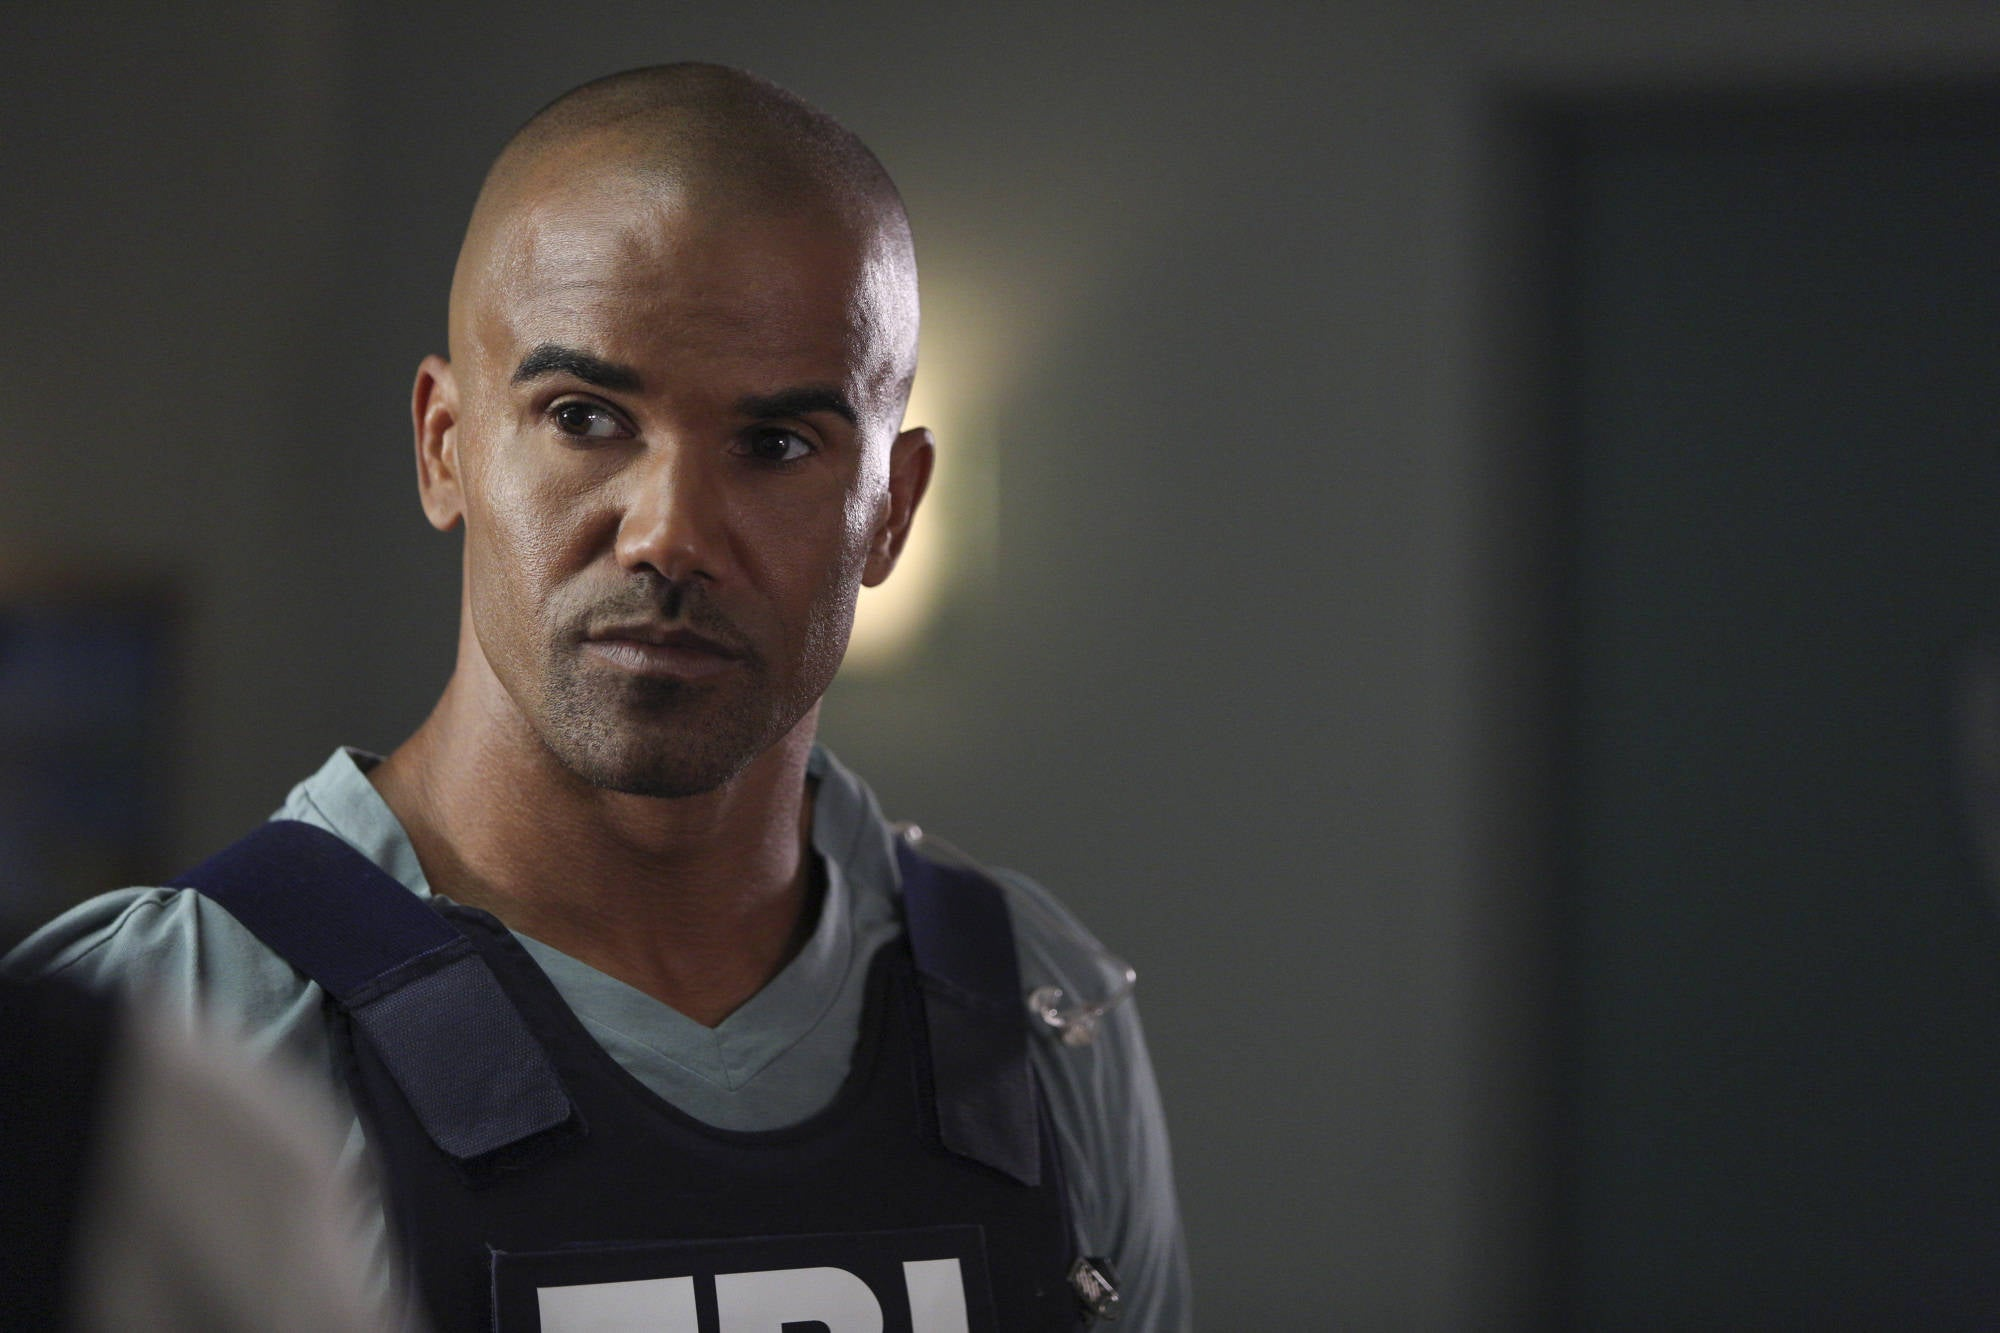 Former Criminal Minds Star Lands Lead Role In S.W.A.T. Reboot Series